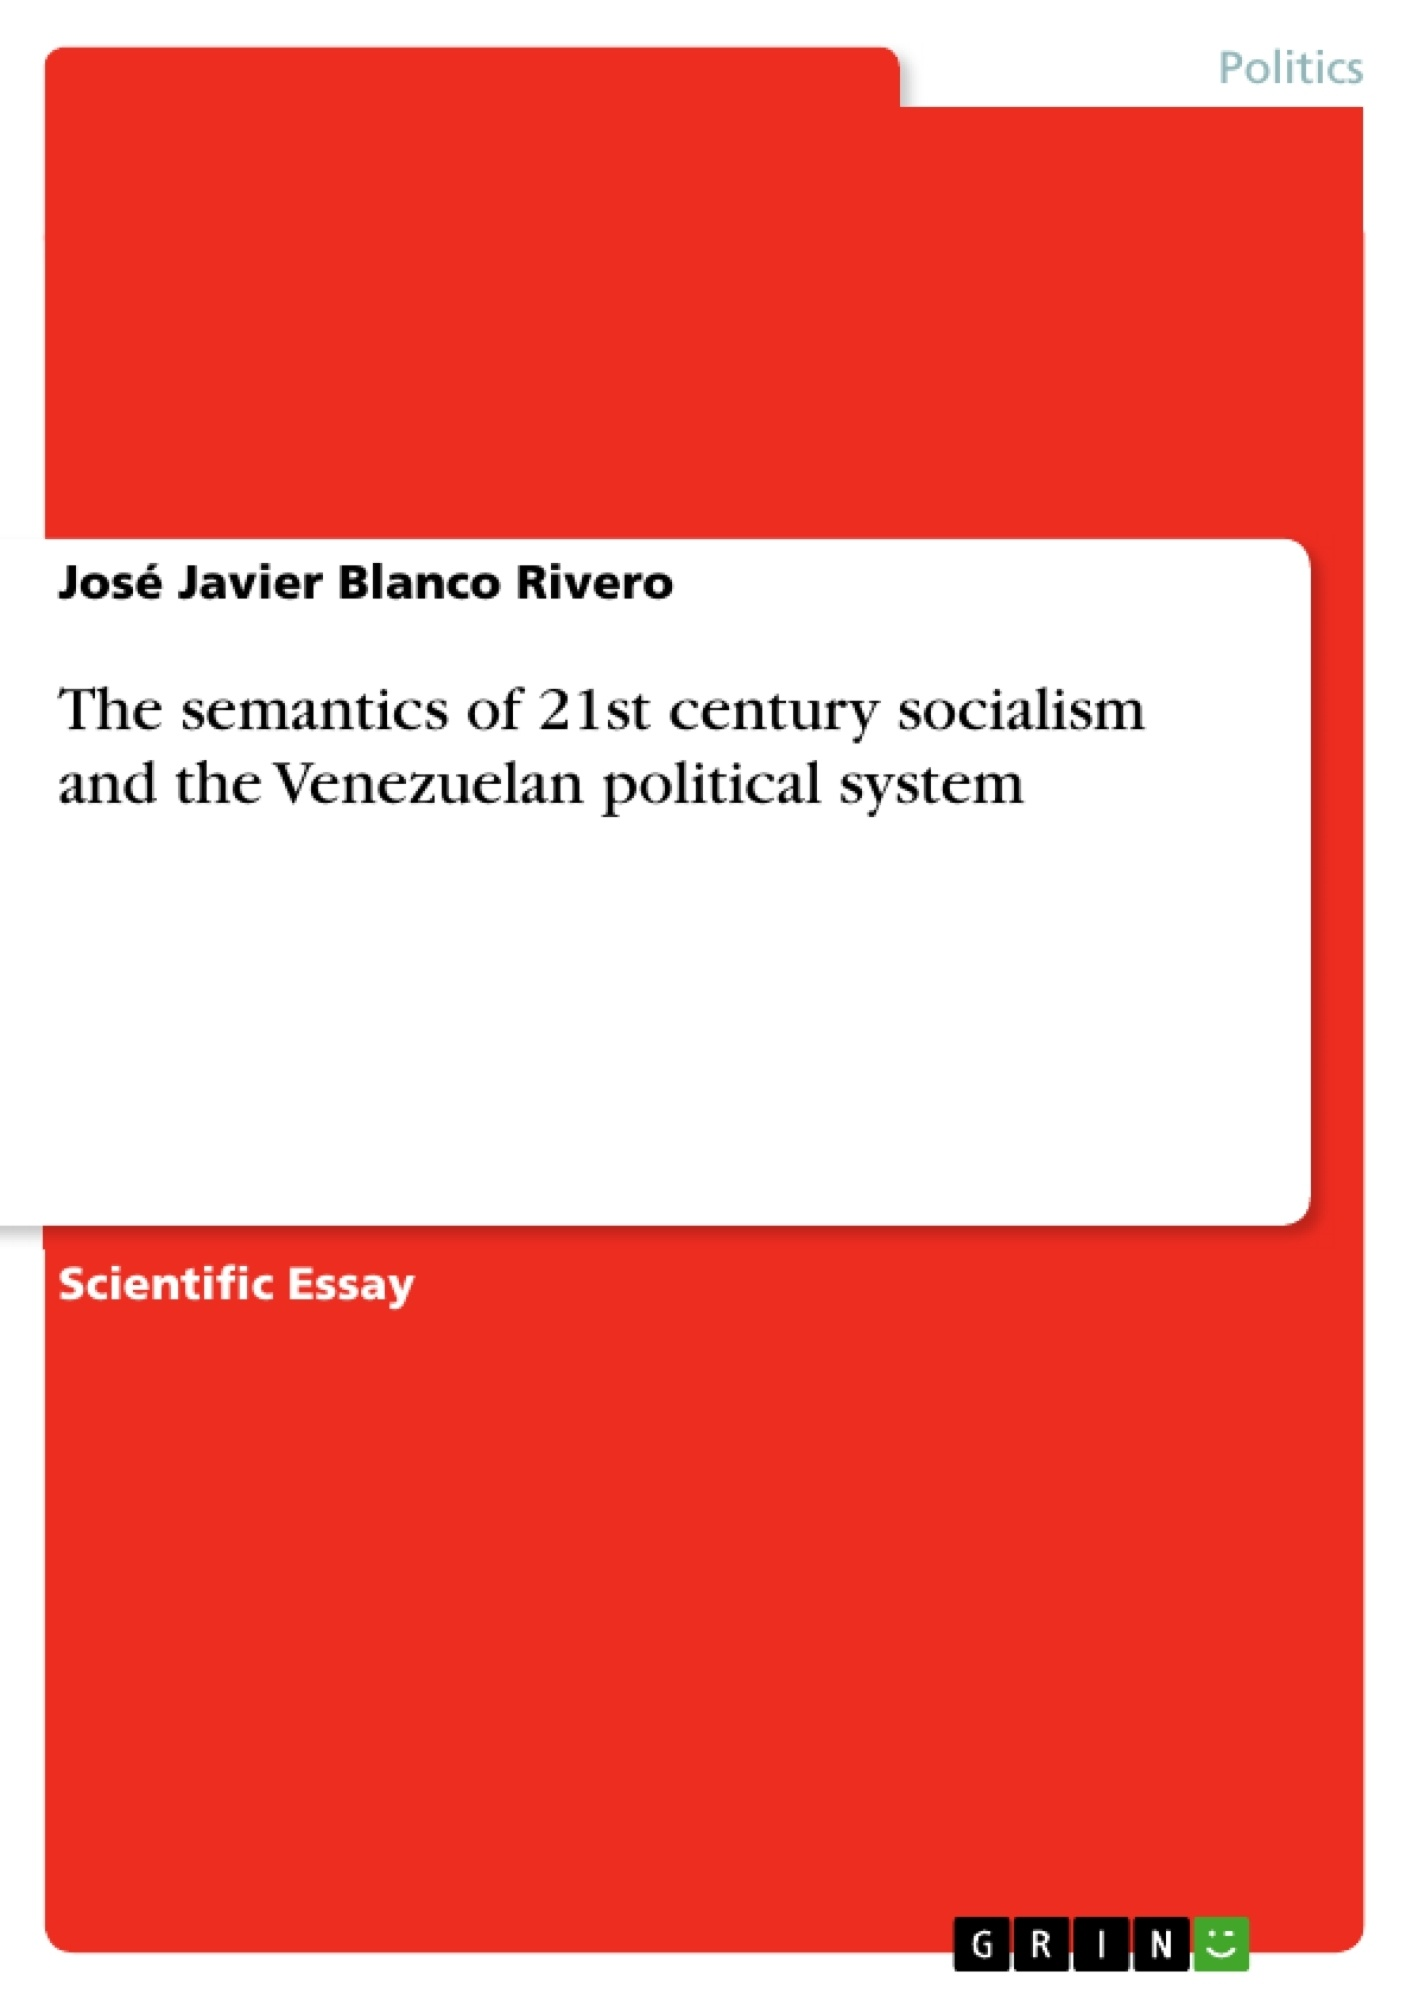 Title: The semantics of 21st century socialism and the Venezuelan political system